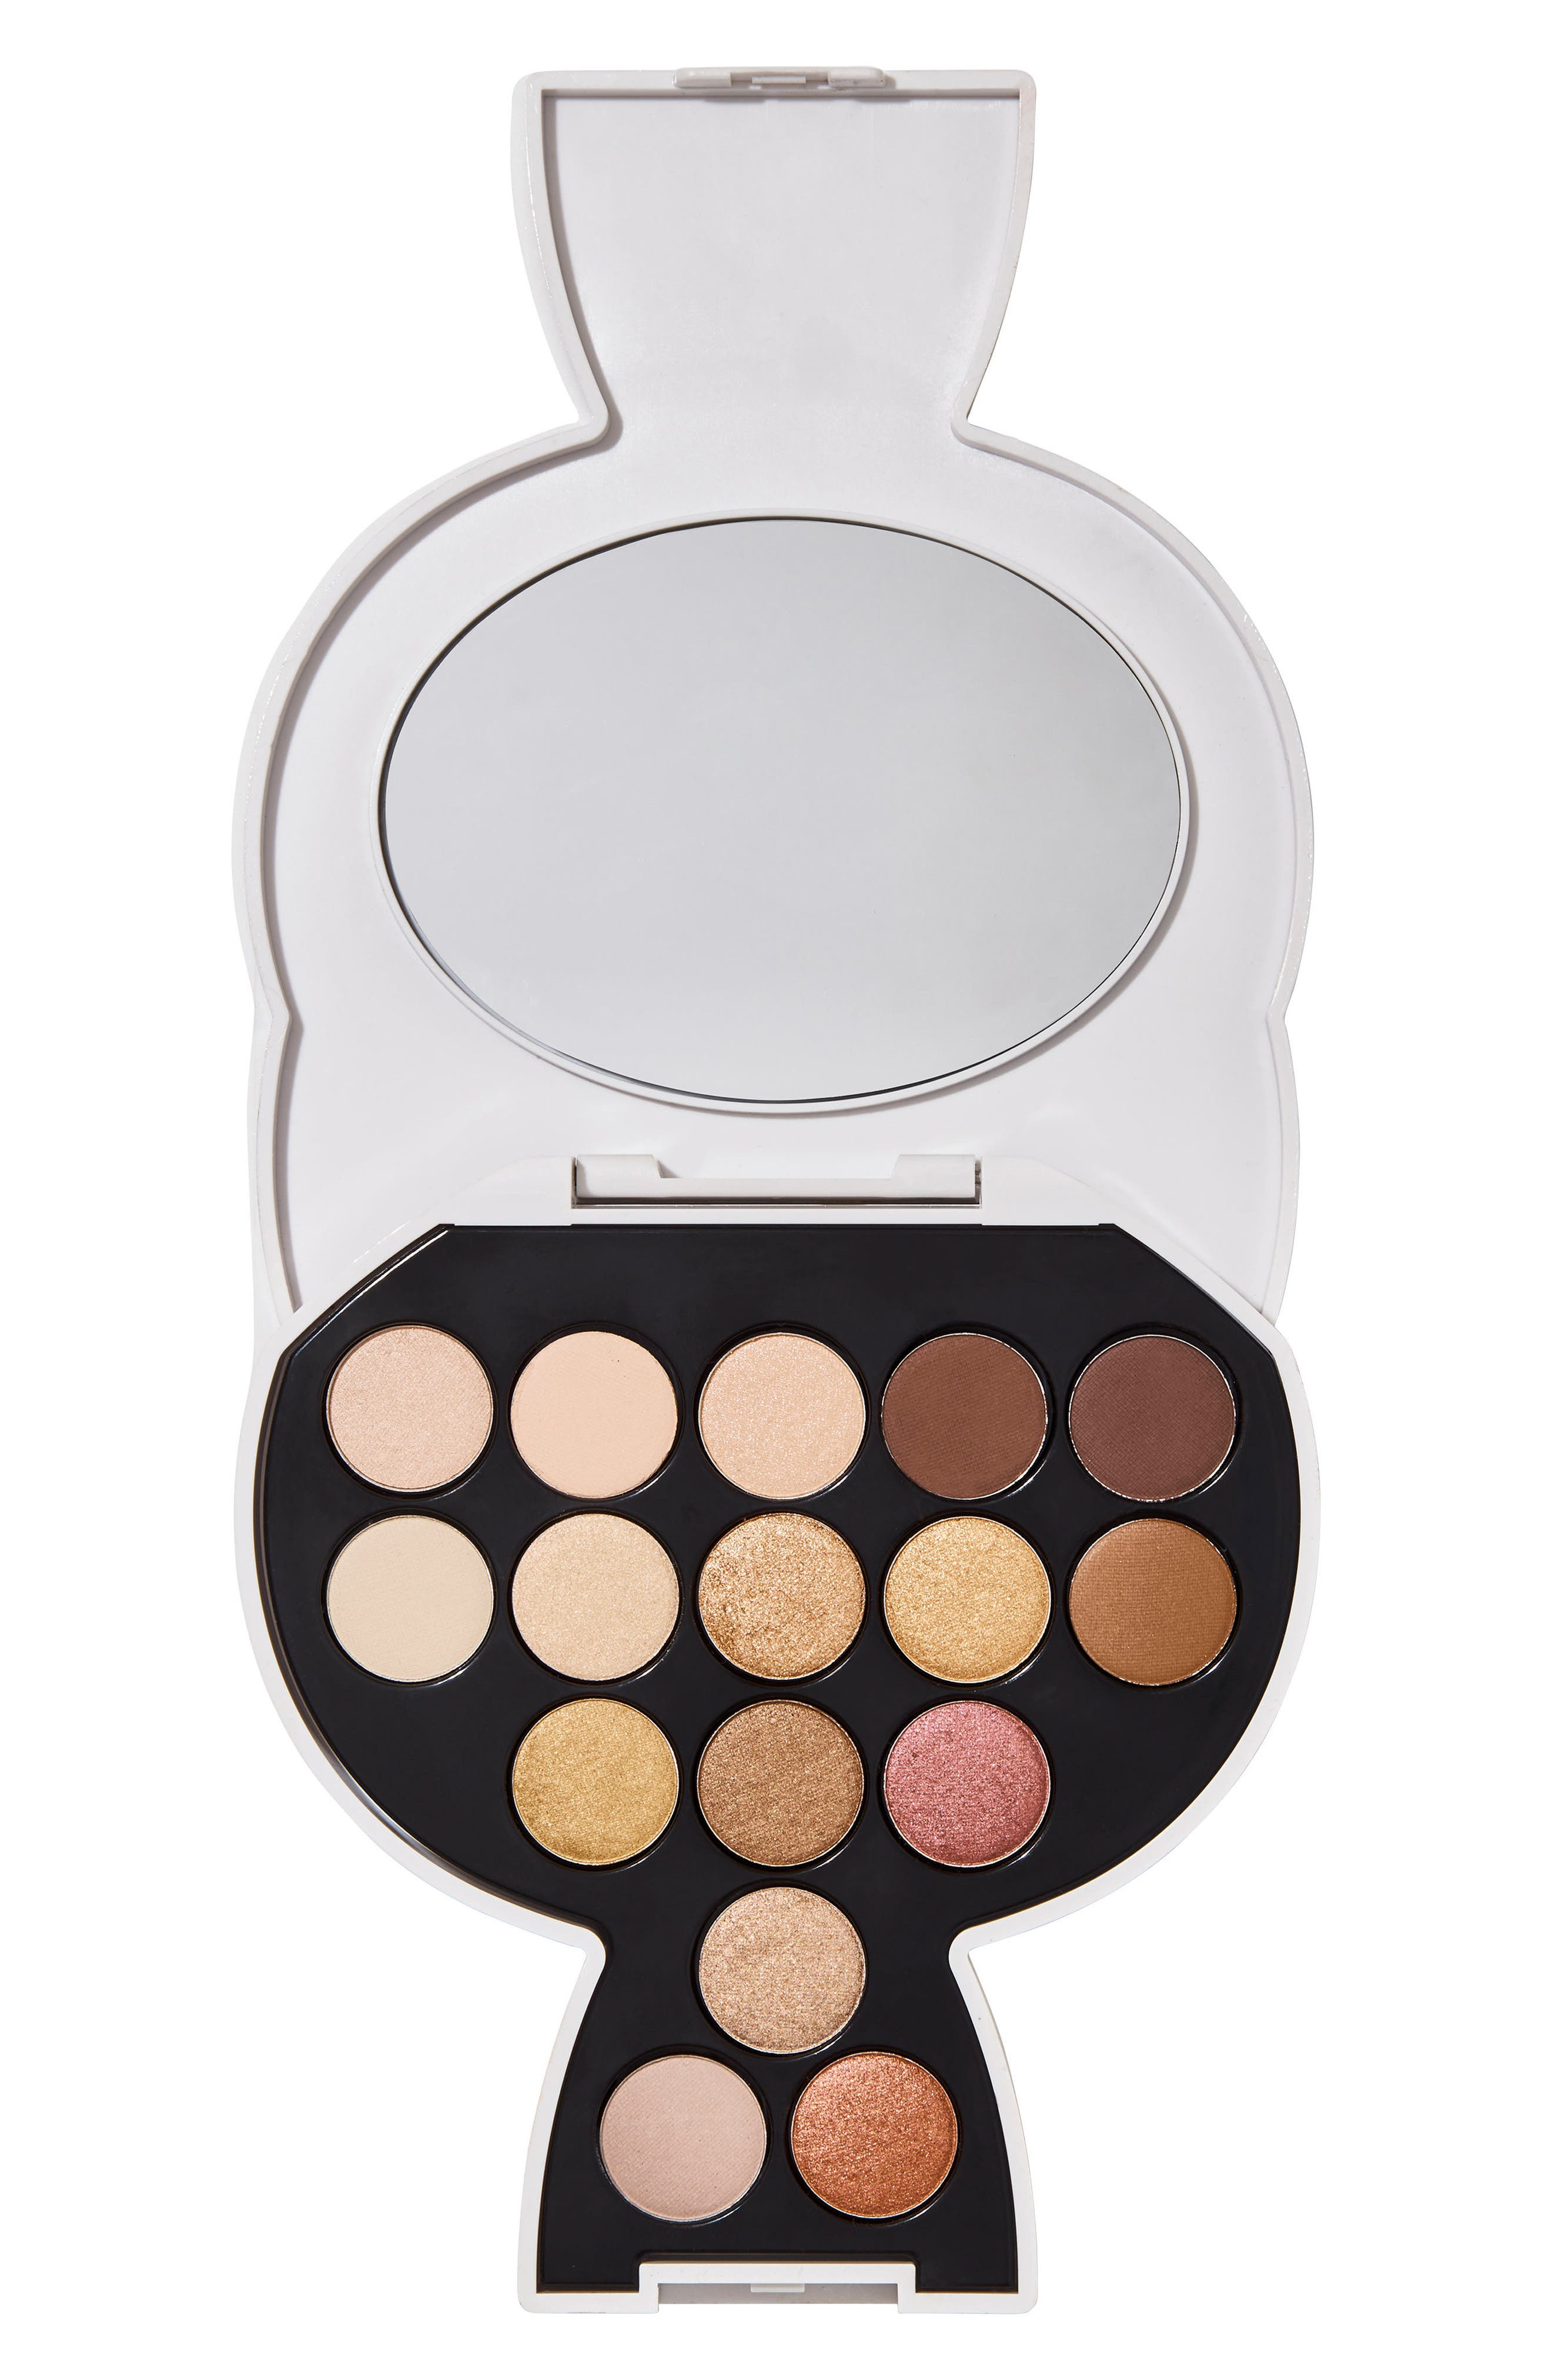 KARL LAGERFELD + MODELCO Kiss Me Karl Choupette Eyeshadow Palette,                         Main,                         color, WARM/NUDE